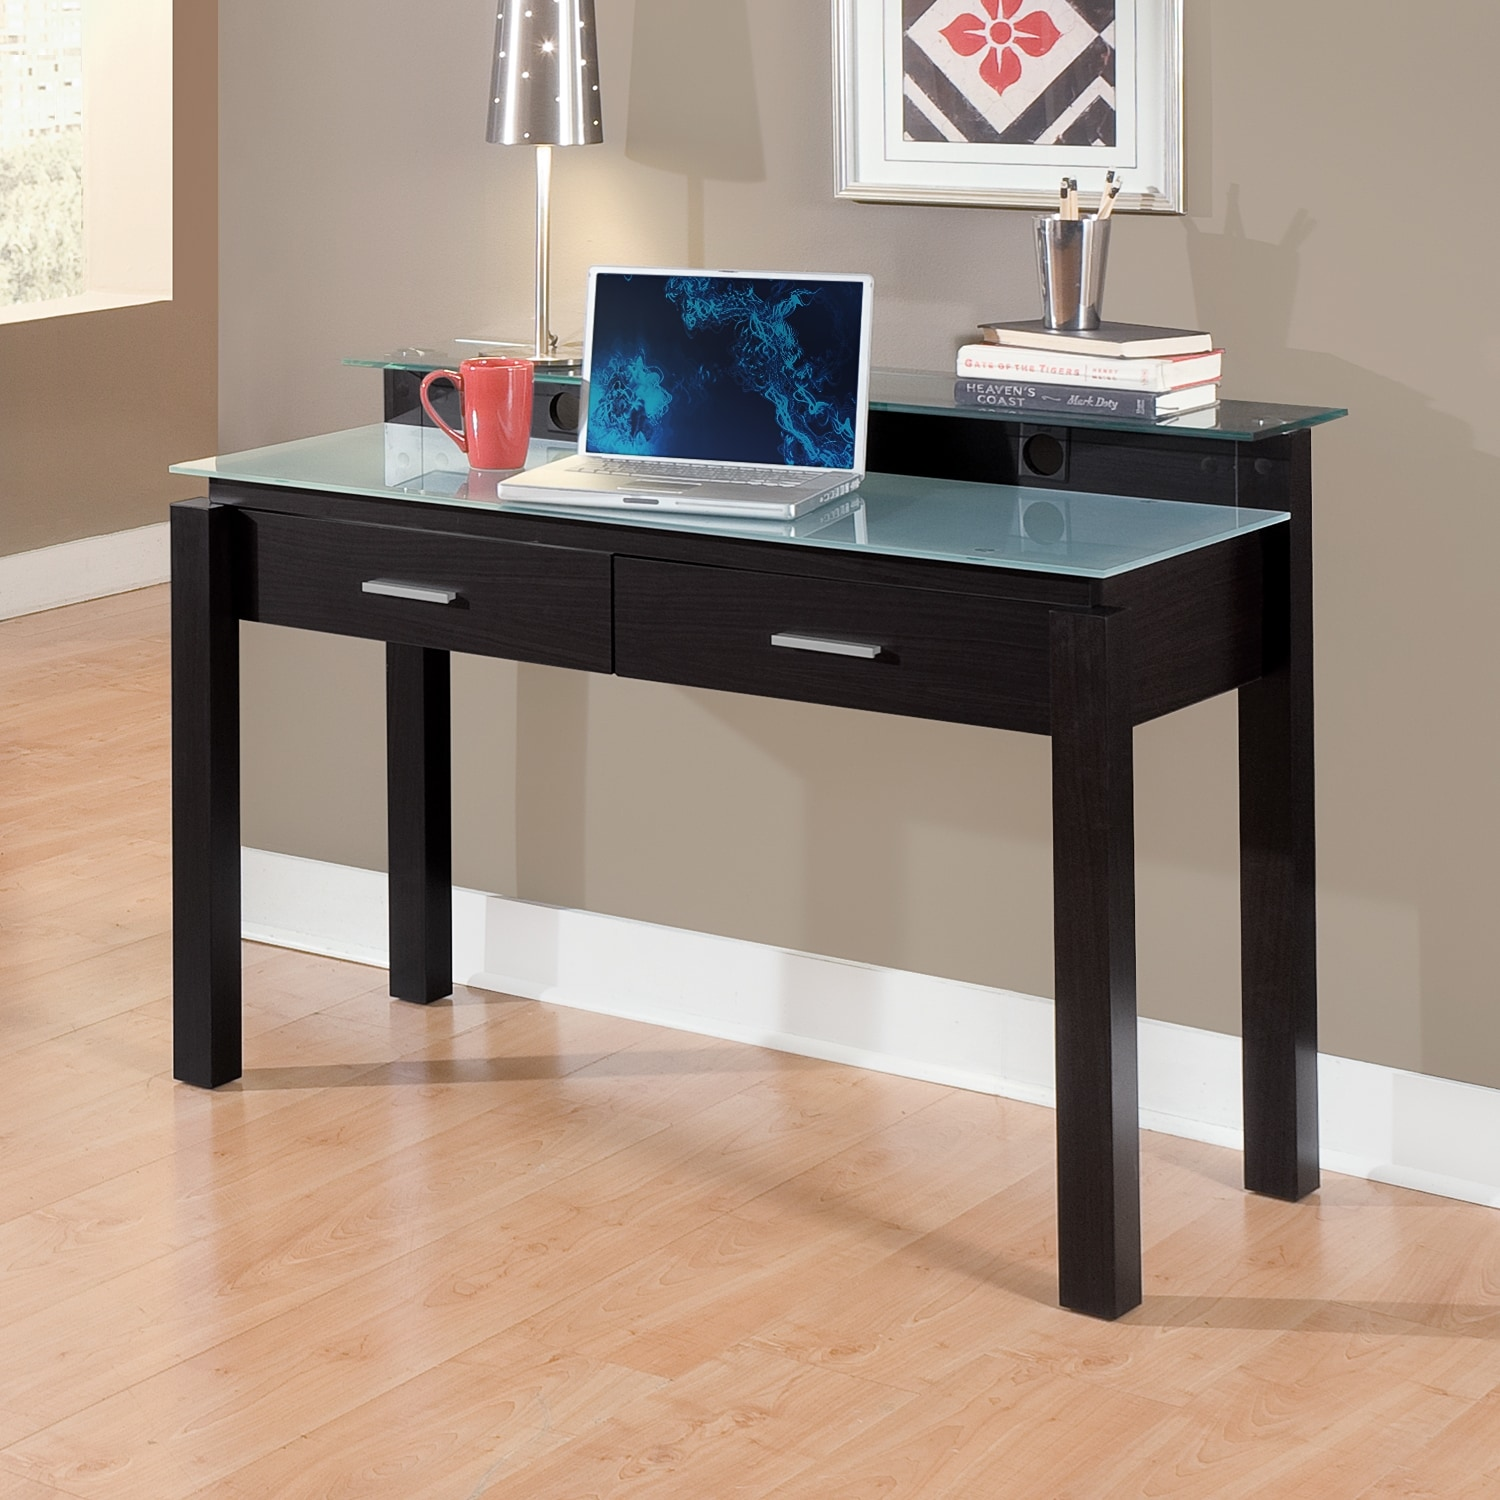 Crescent Desk | American Signature Furniture